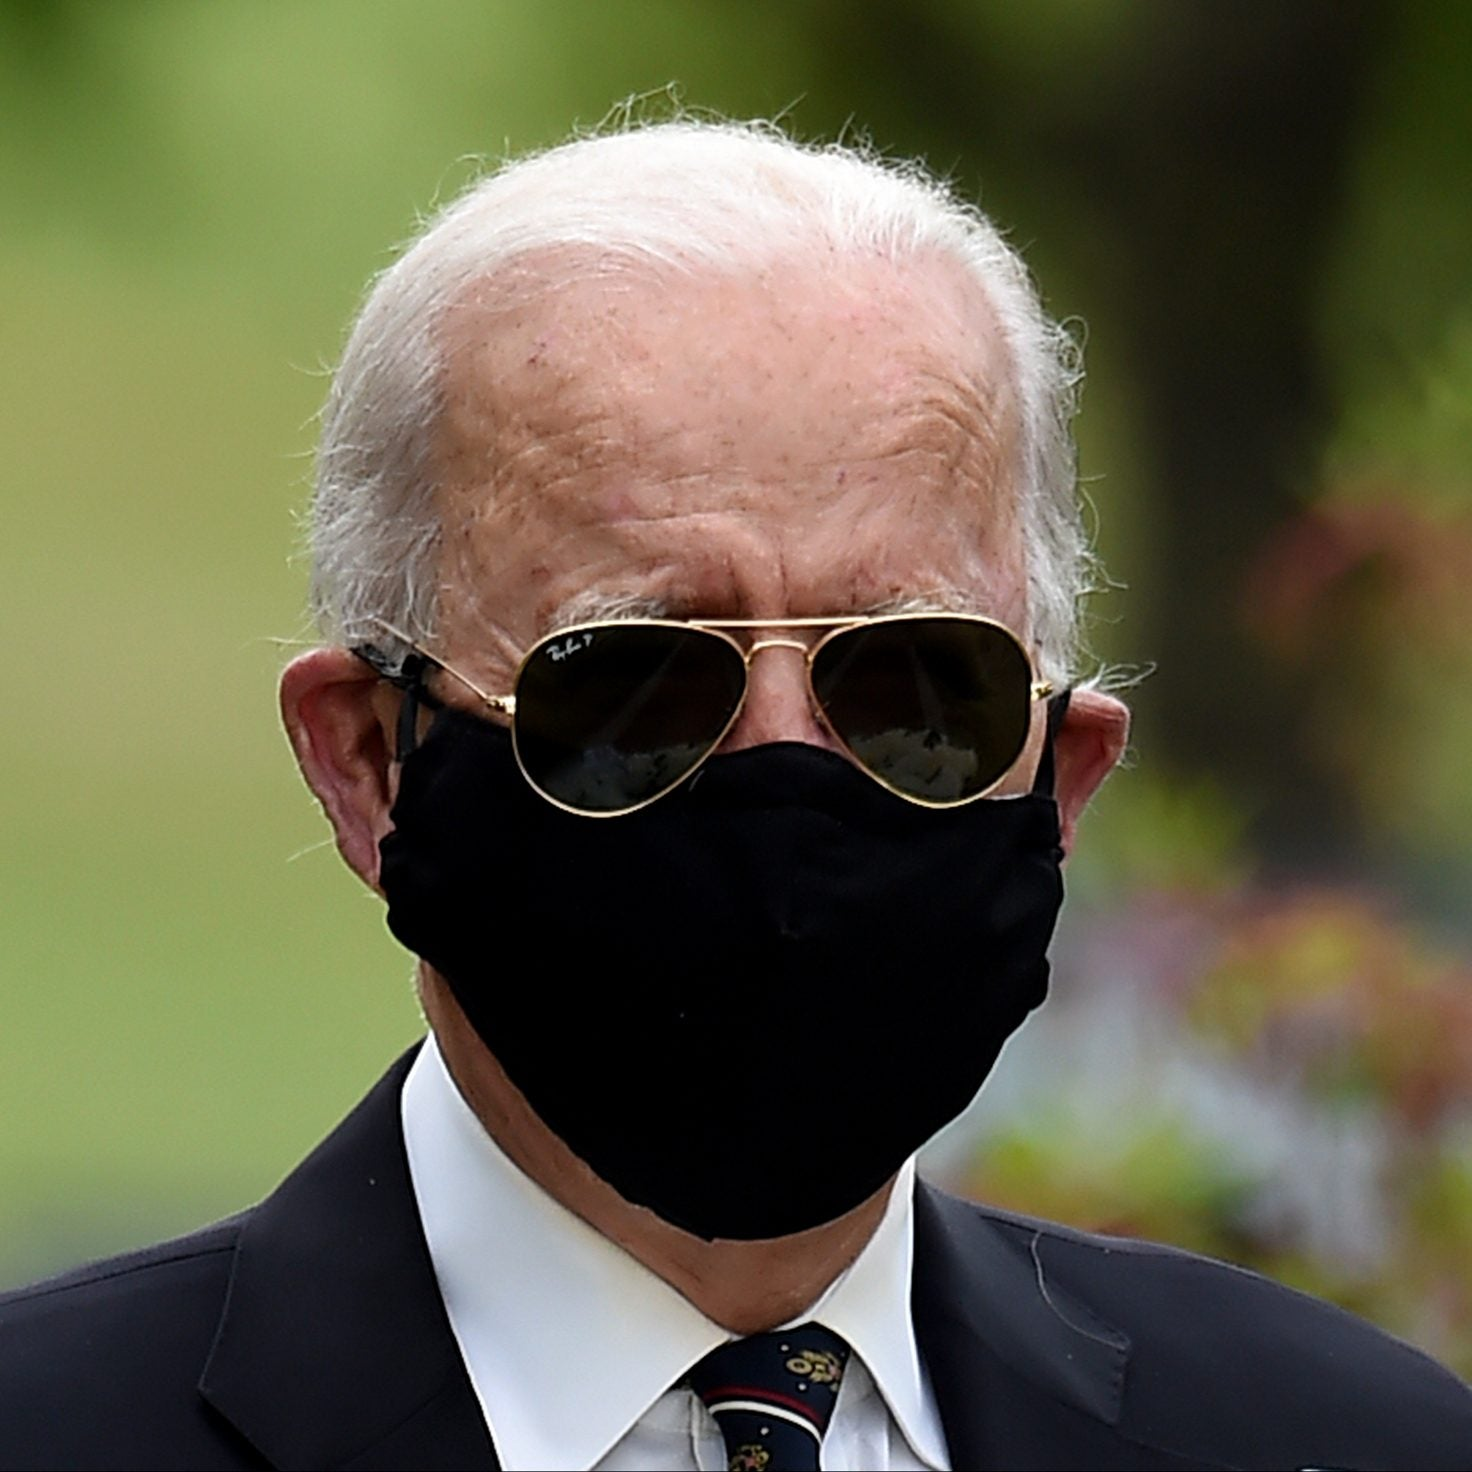 Biden Calls Trump An 'Absolute Fool' For Criticizing Those Wearing Face Masks